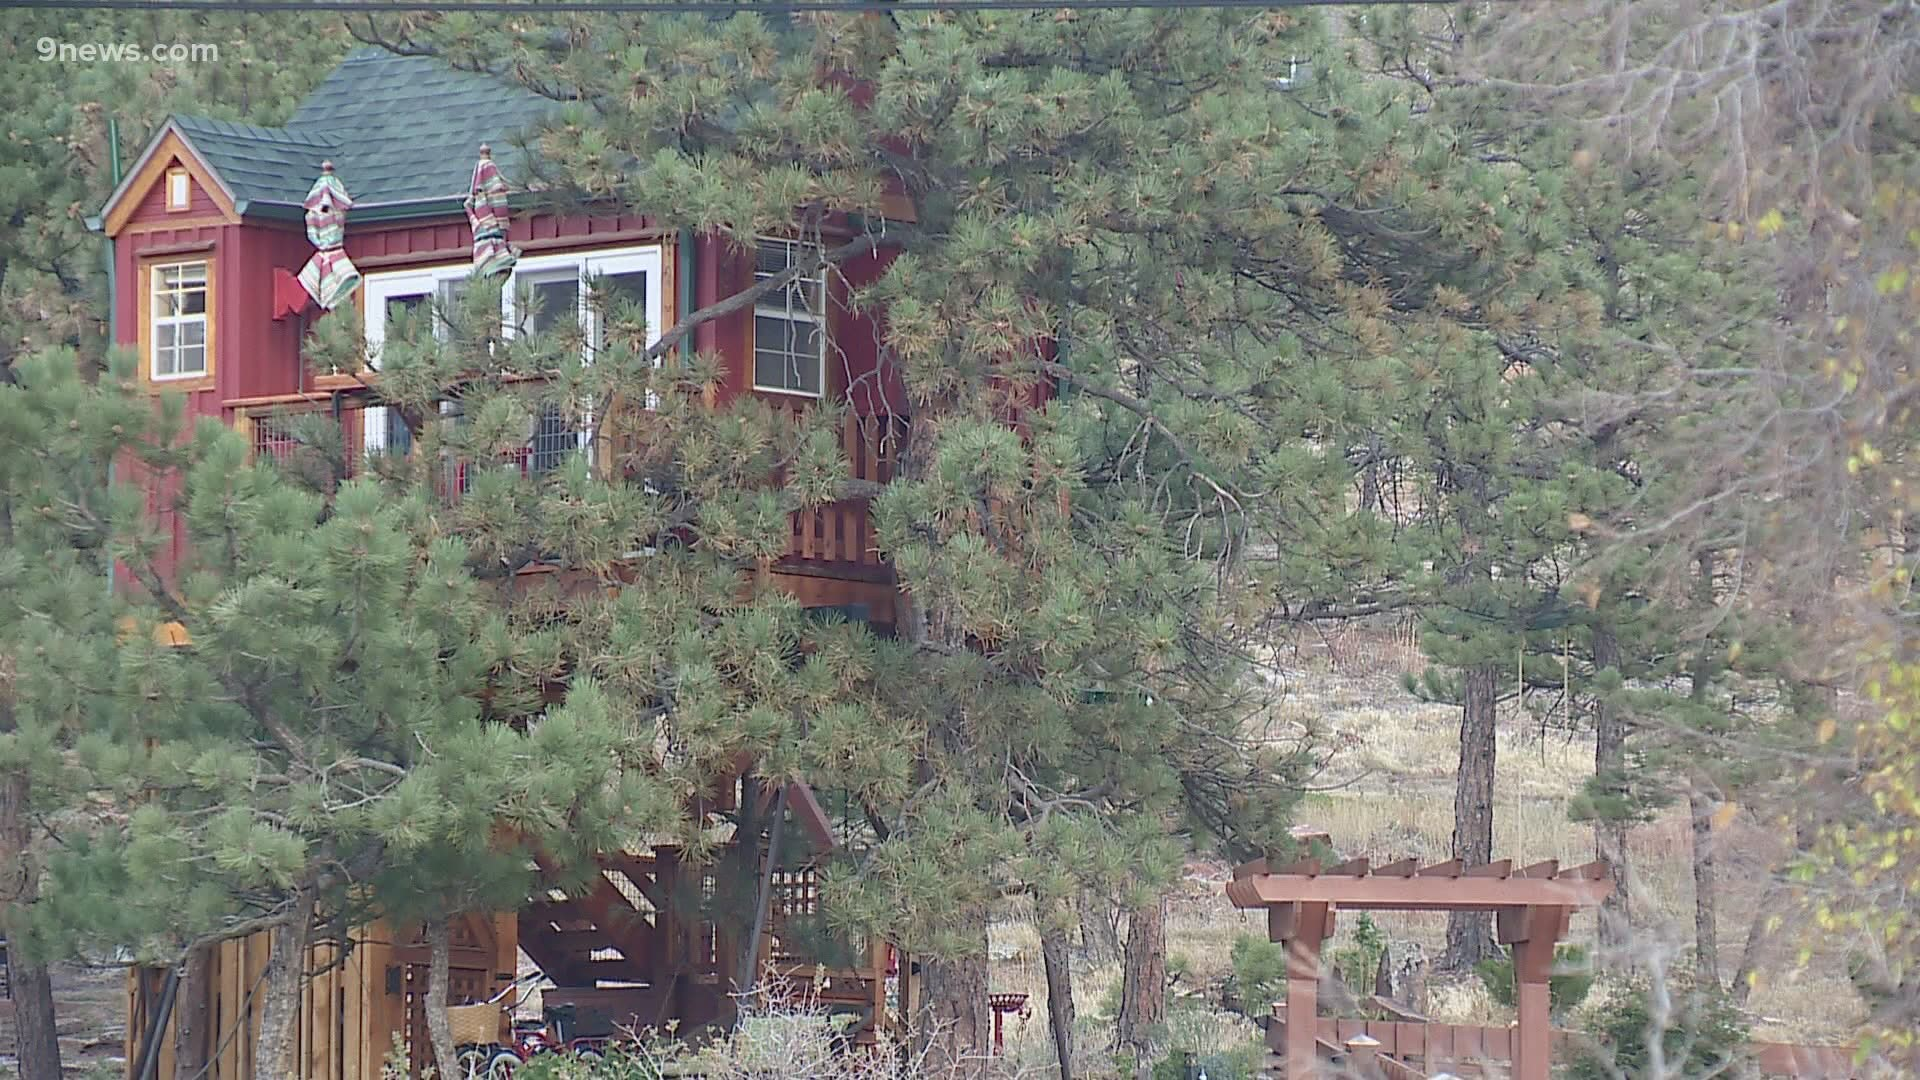 Unique Tree House Rental Available In Lyons 9news Com